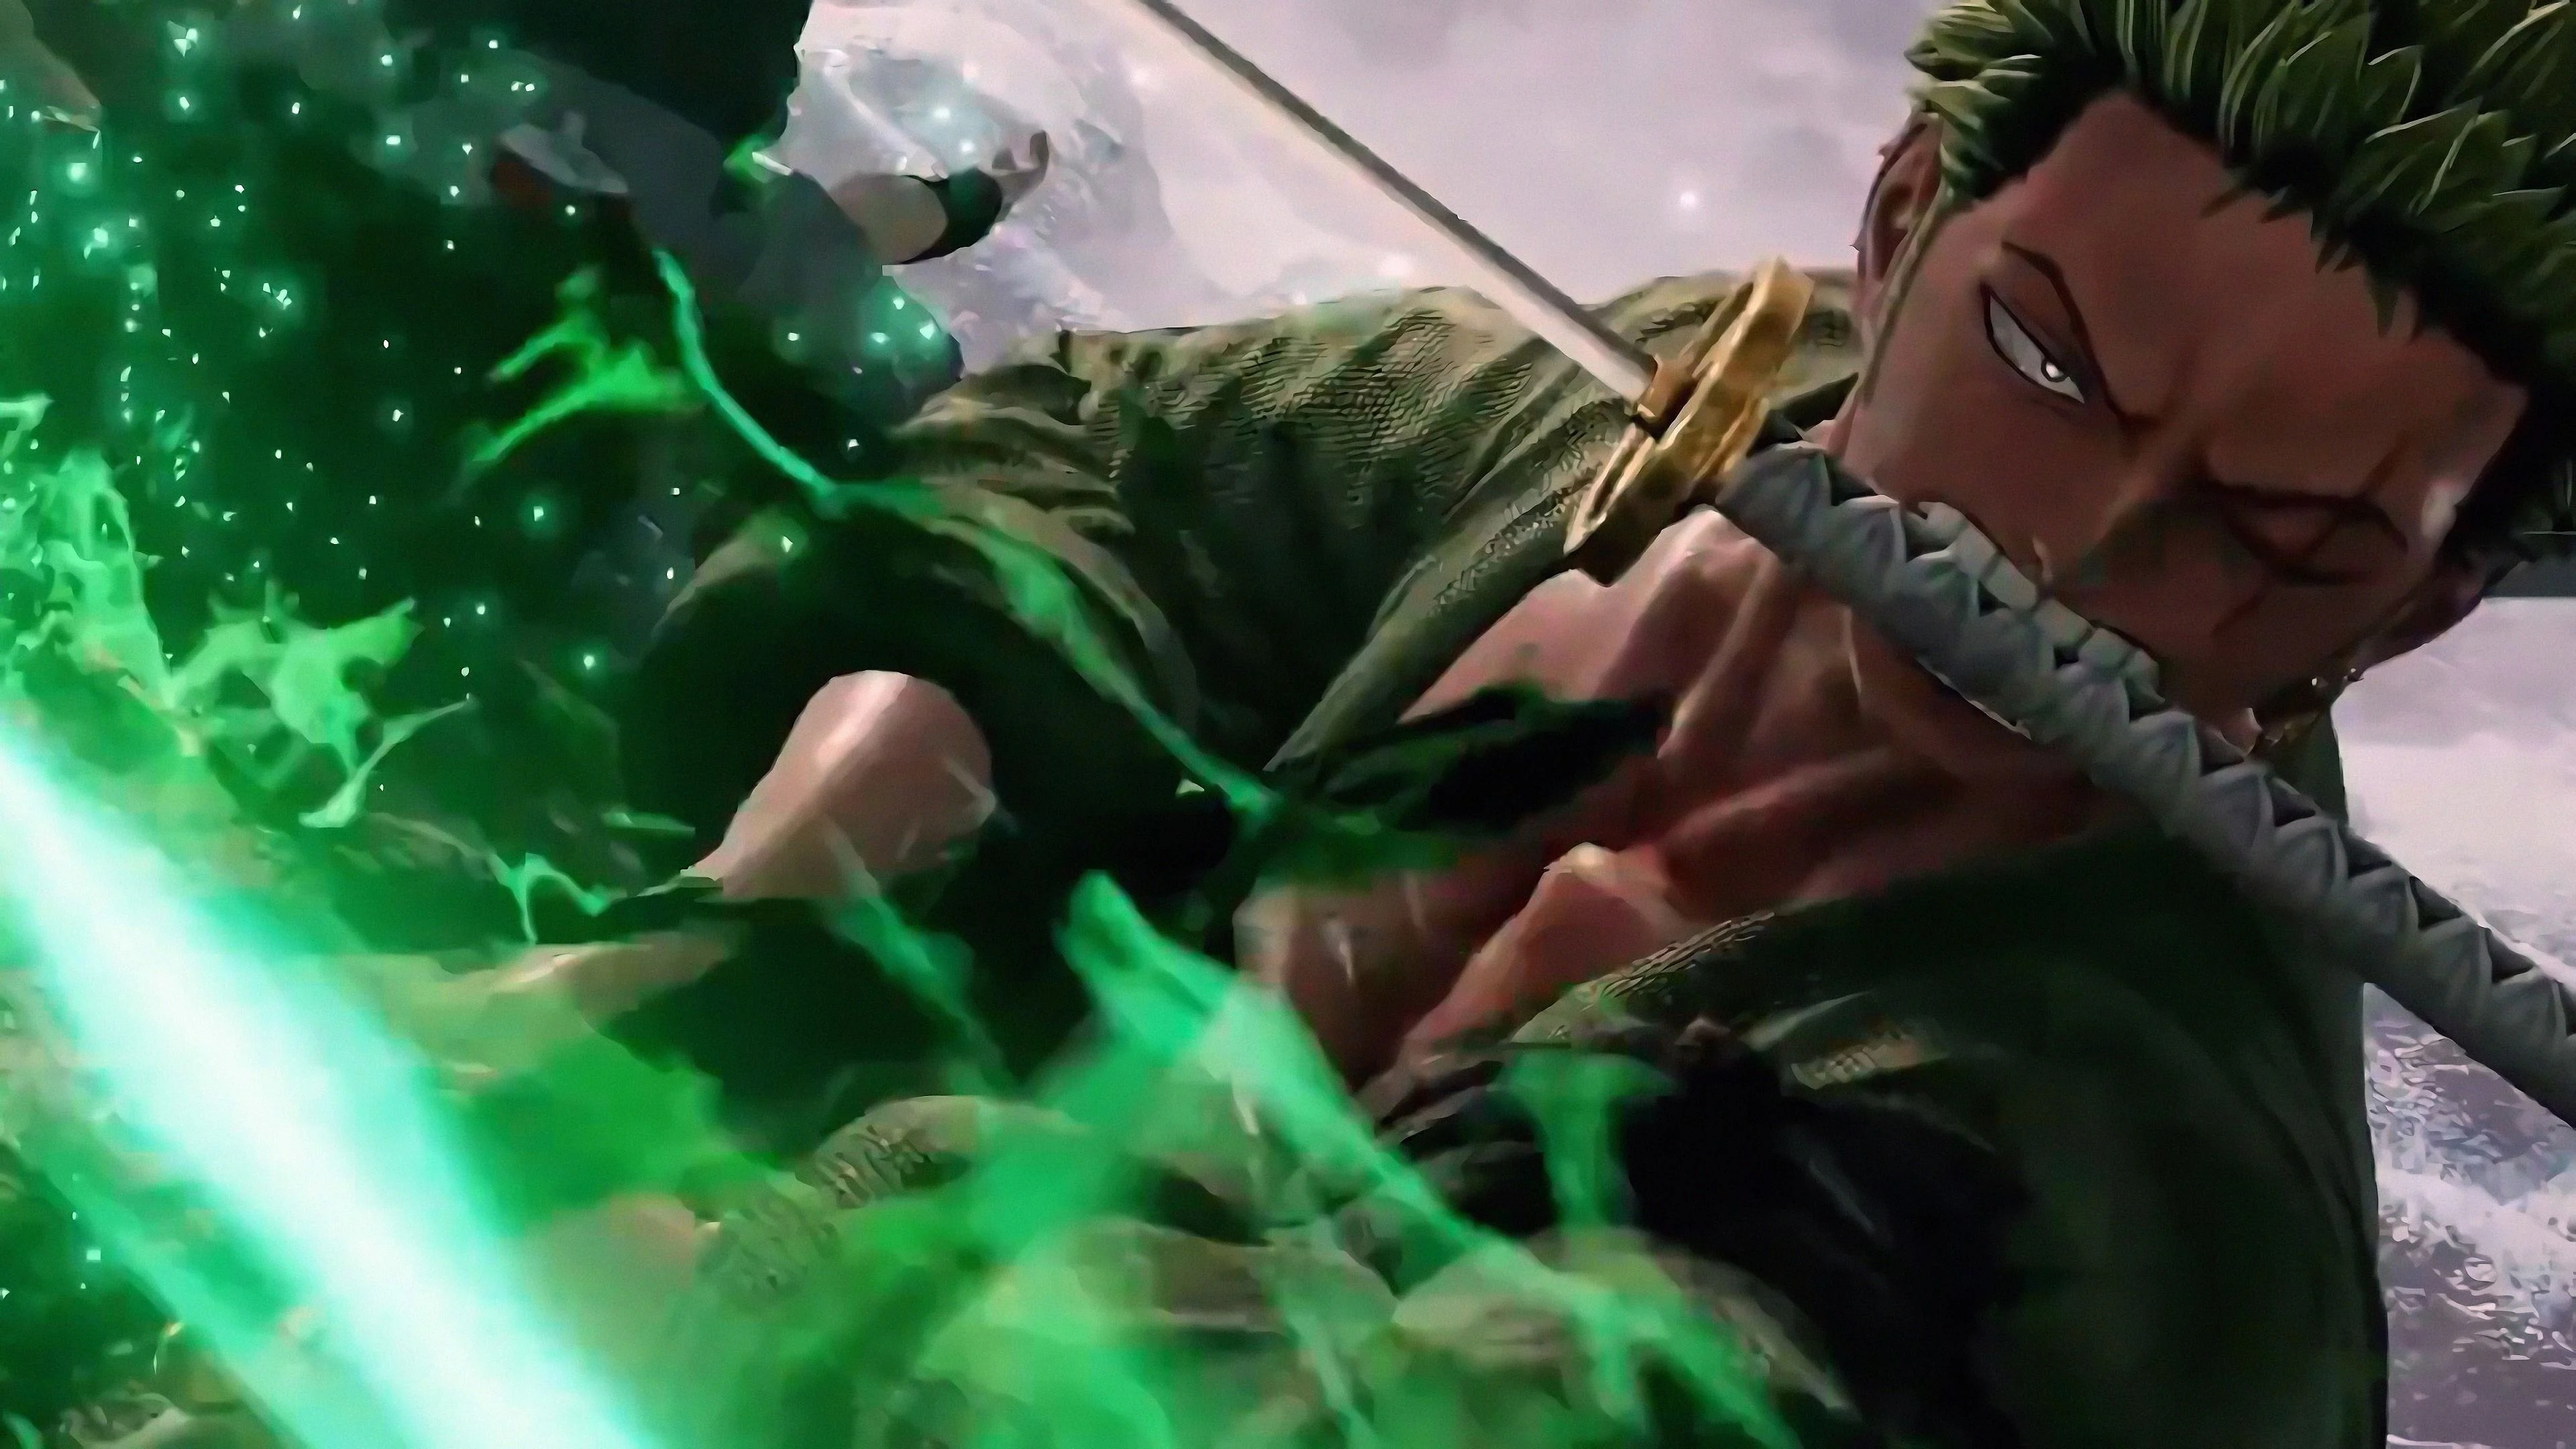 Start your search now and free your phone. One Piece Zoro 4K Wallpapers - Top Free One Piece Zoro 4K ...